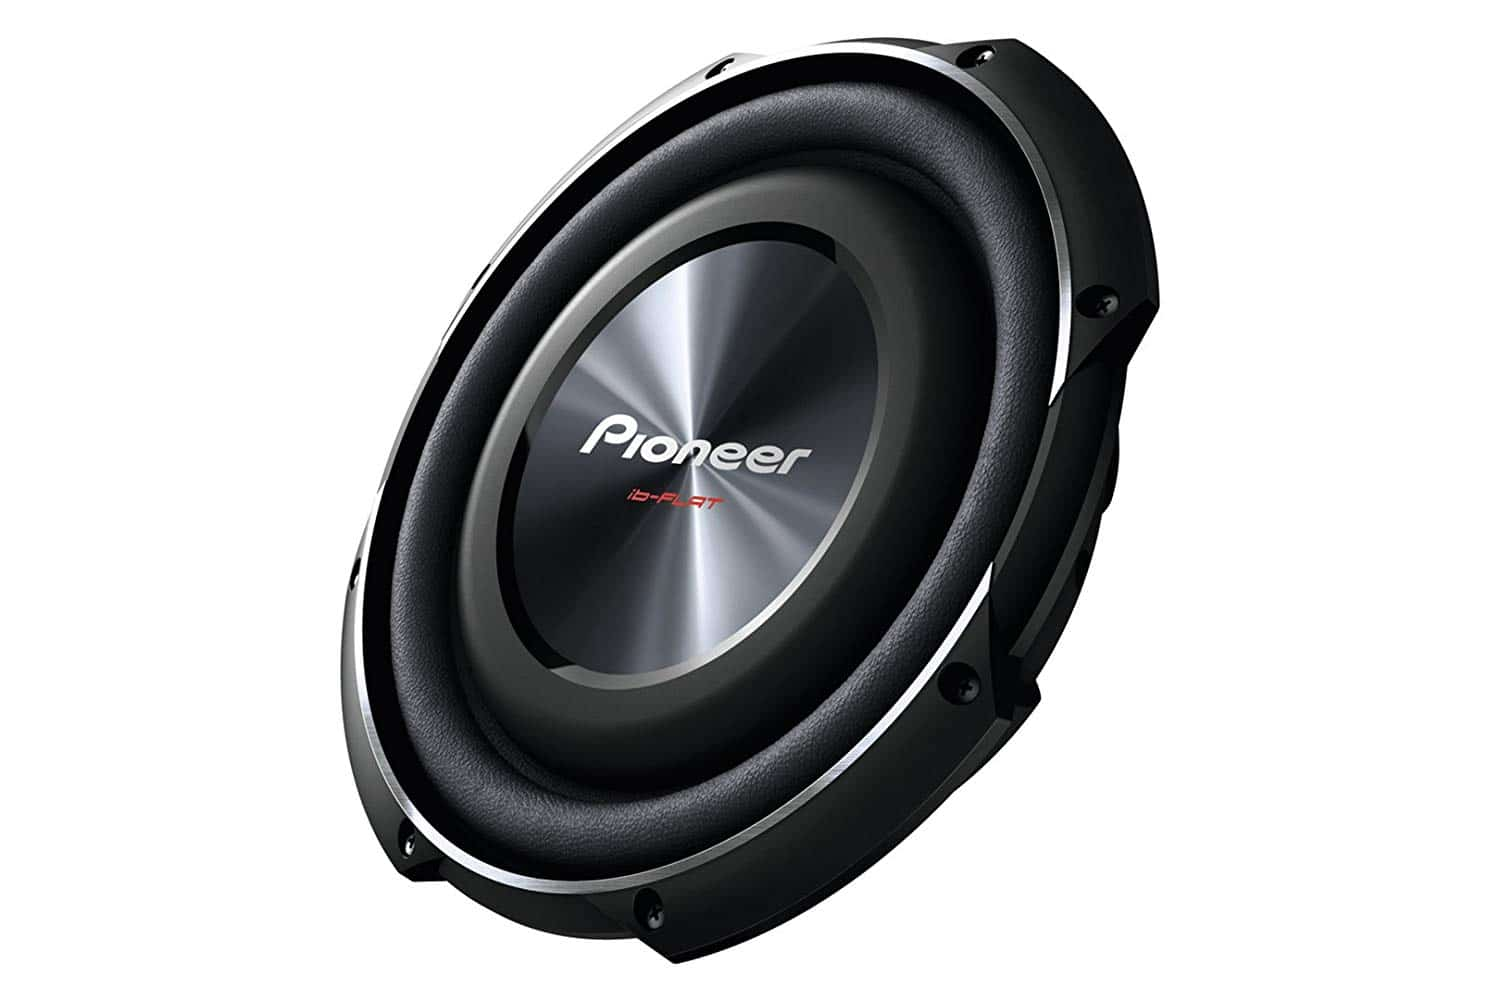 10-inch subwoofer from Pioneer